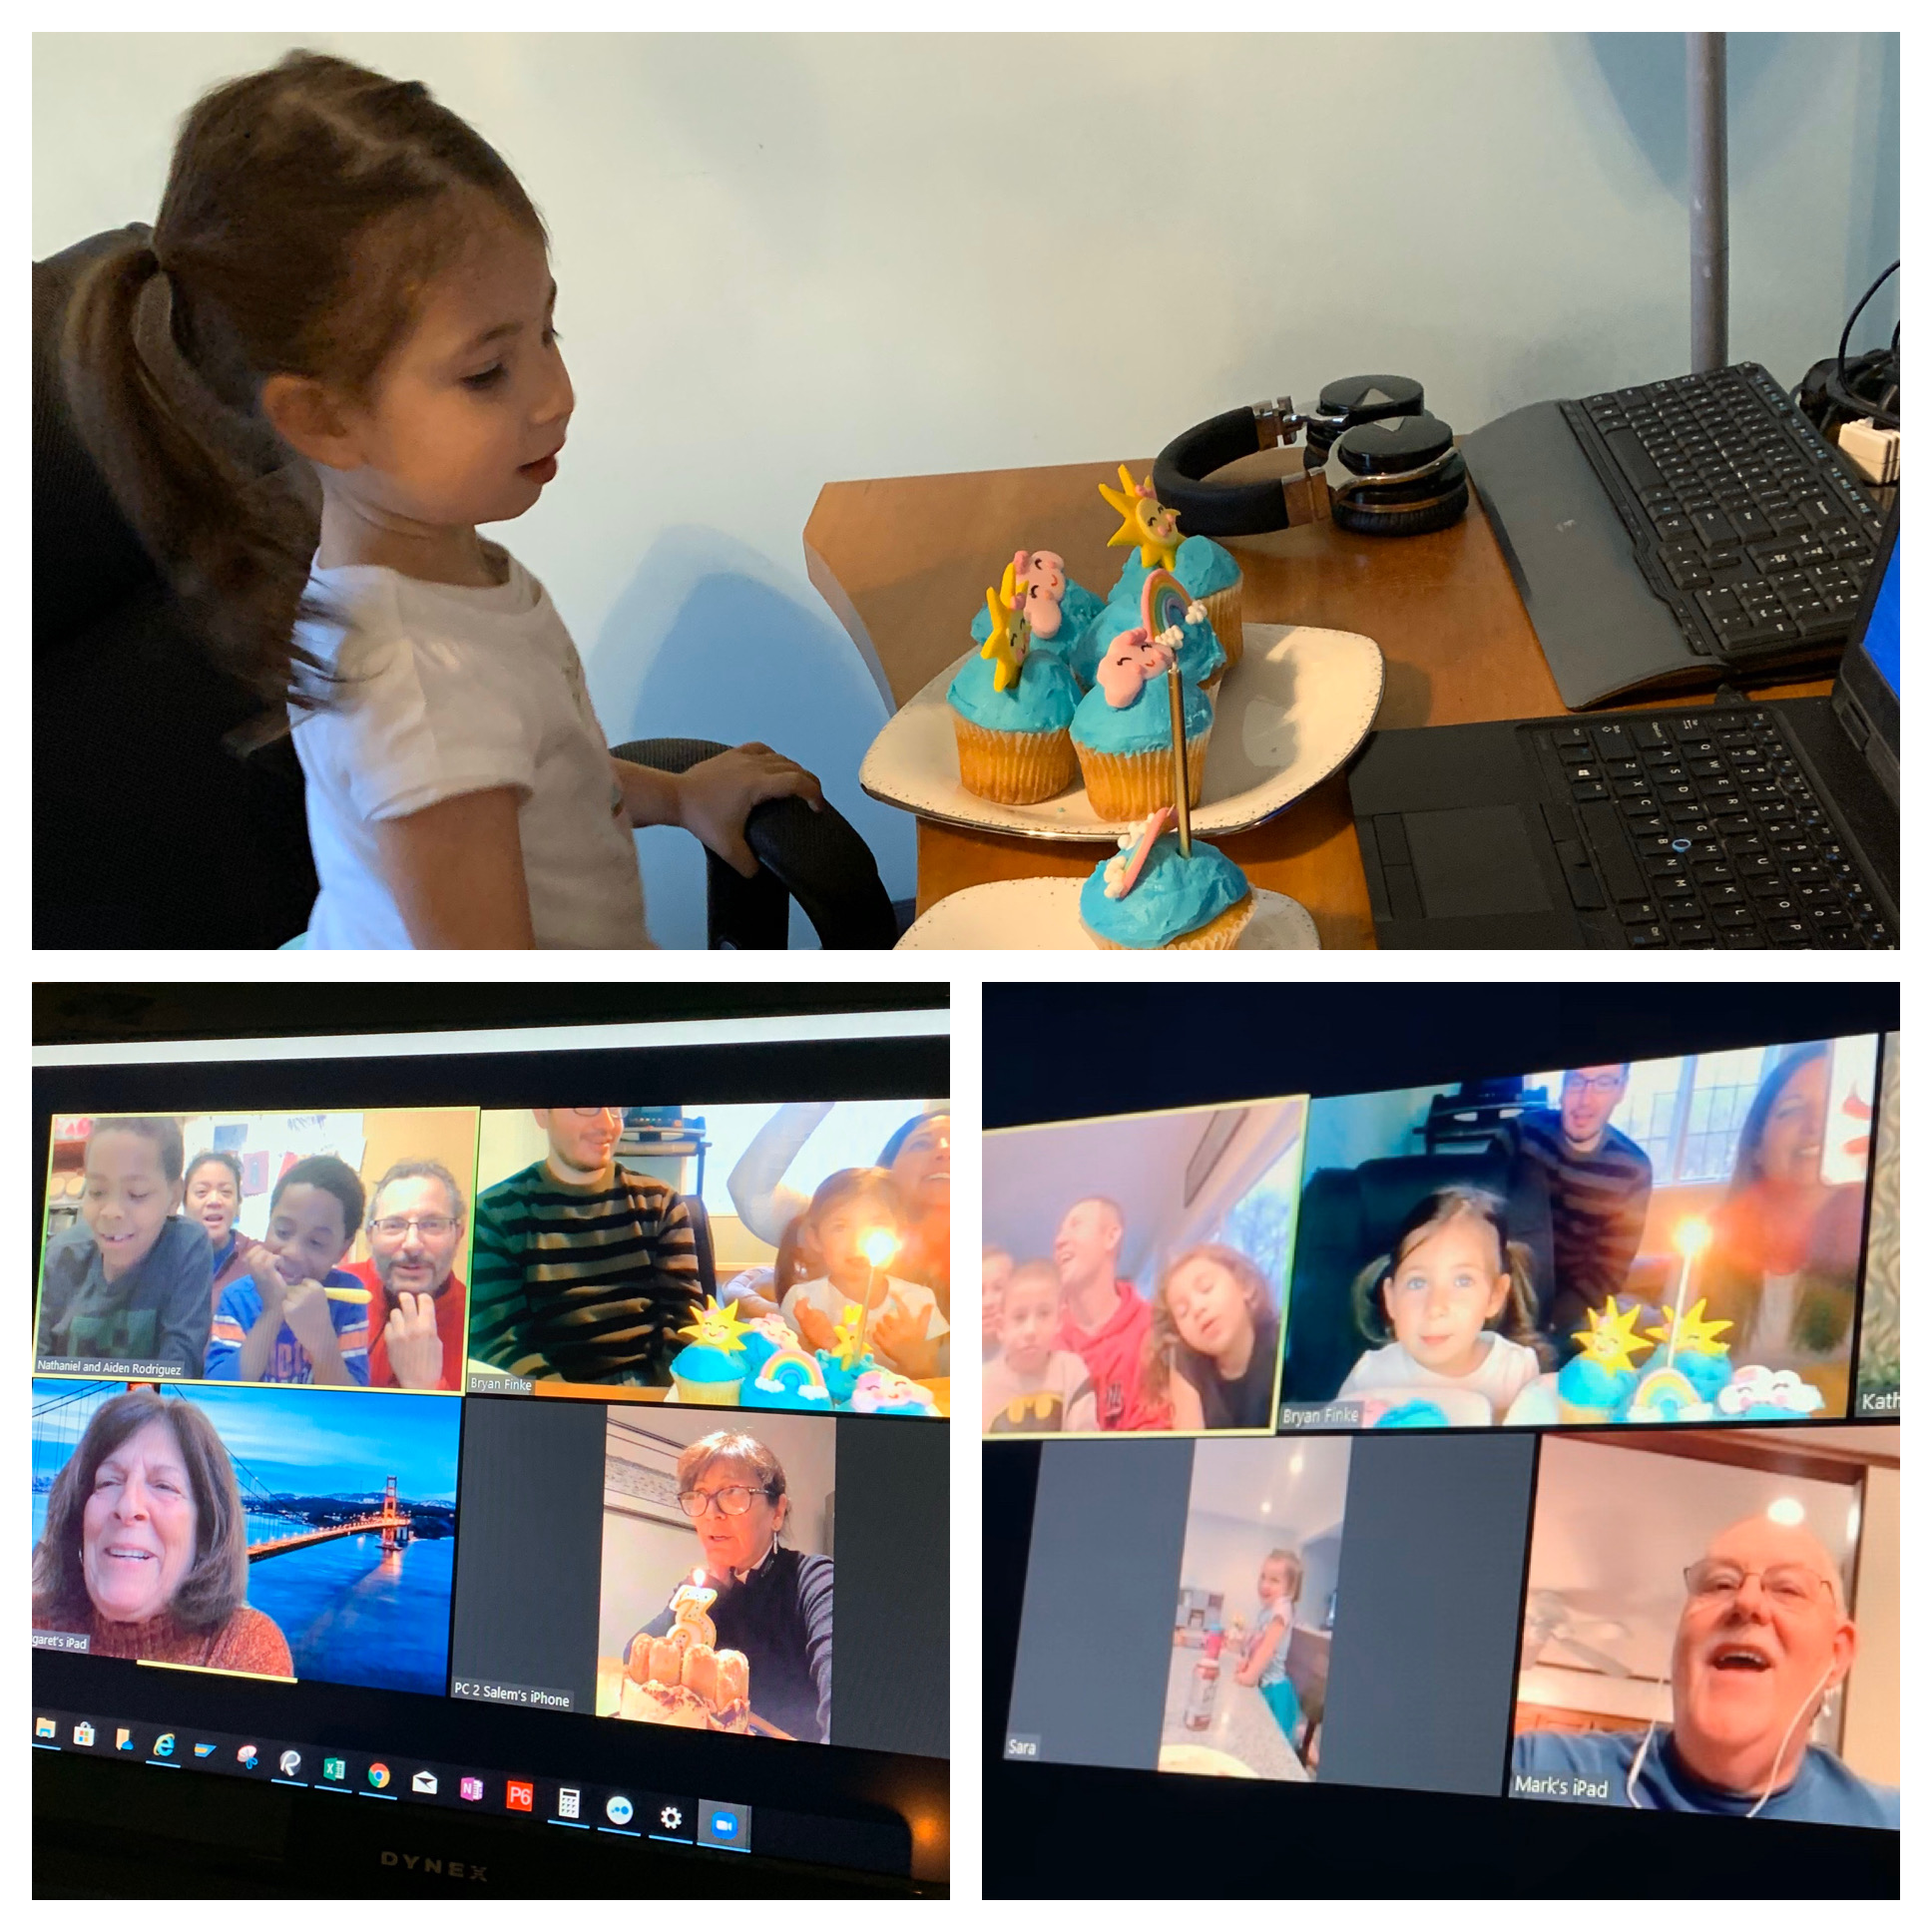 Top: Child looks at cupcakes; Bottom: computer screen with several people videoconferencing